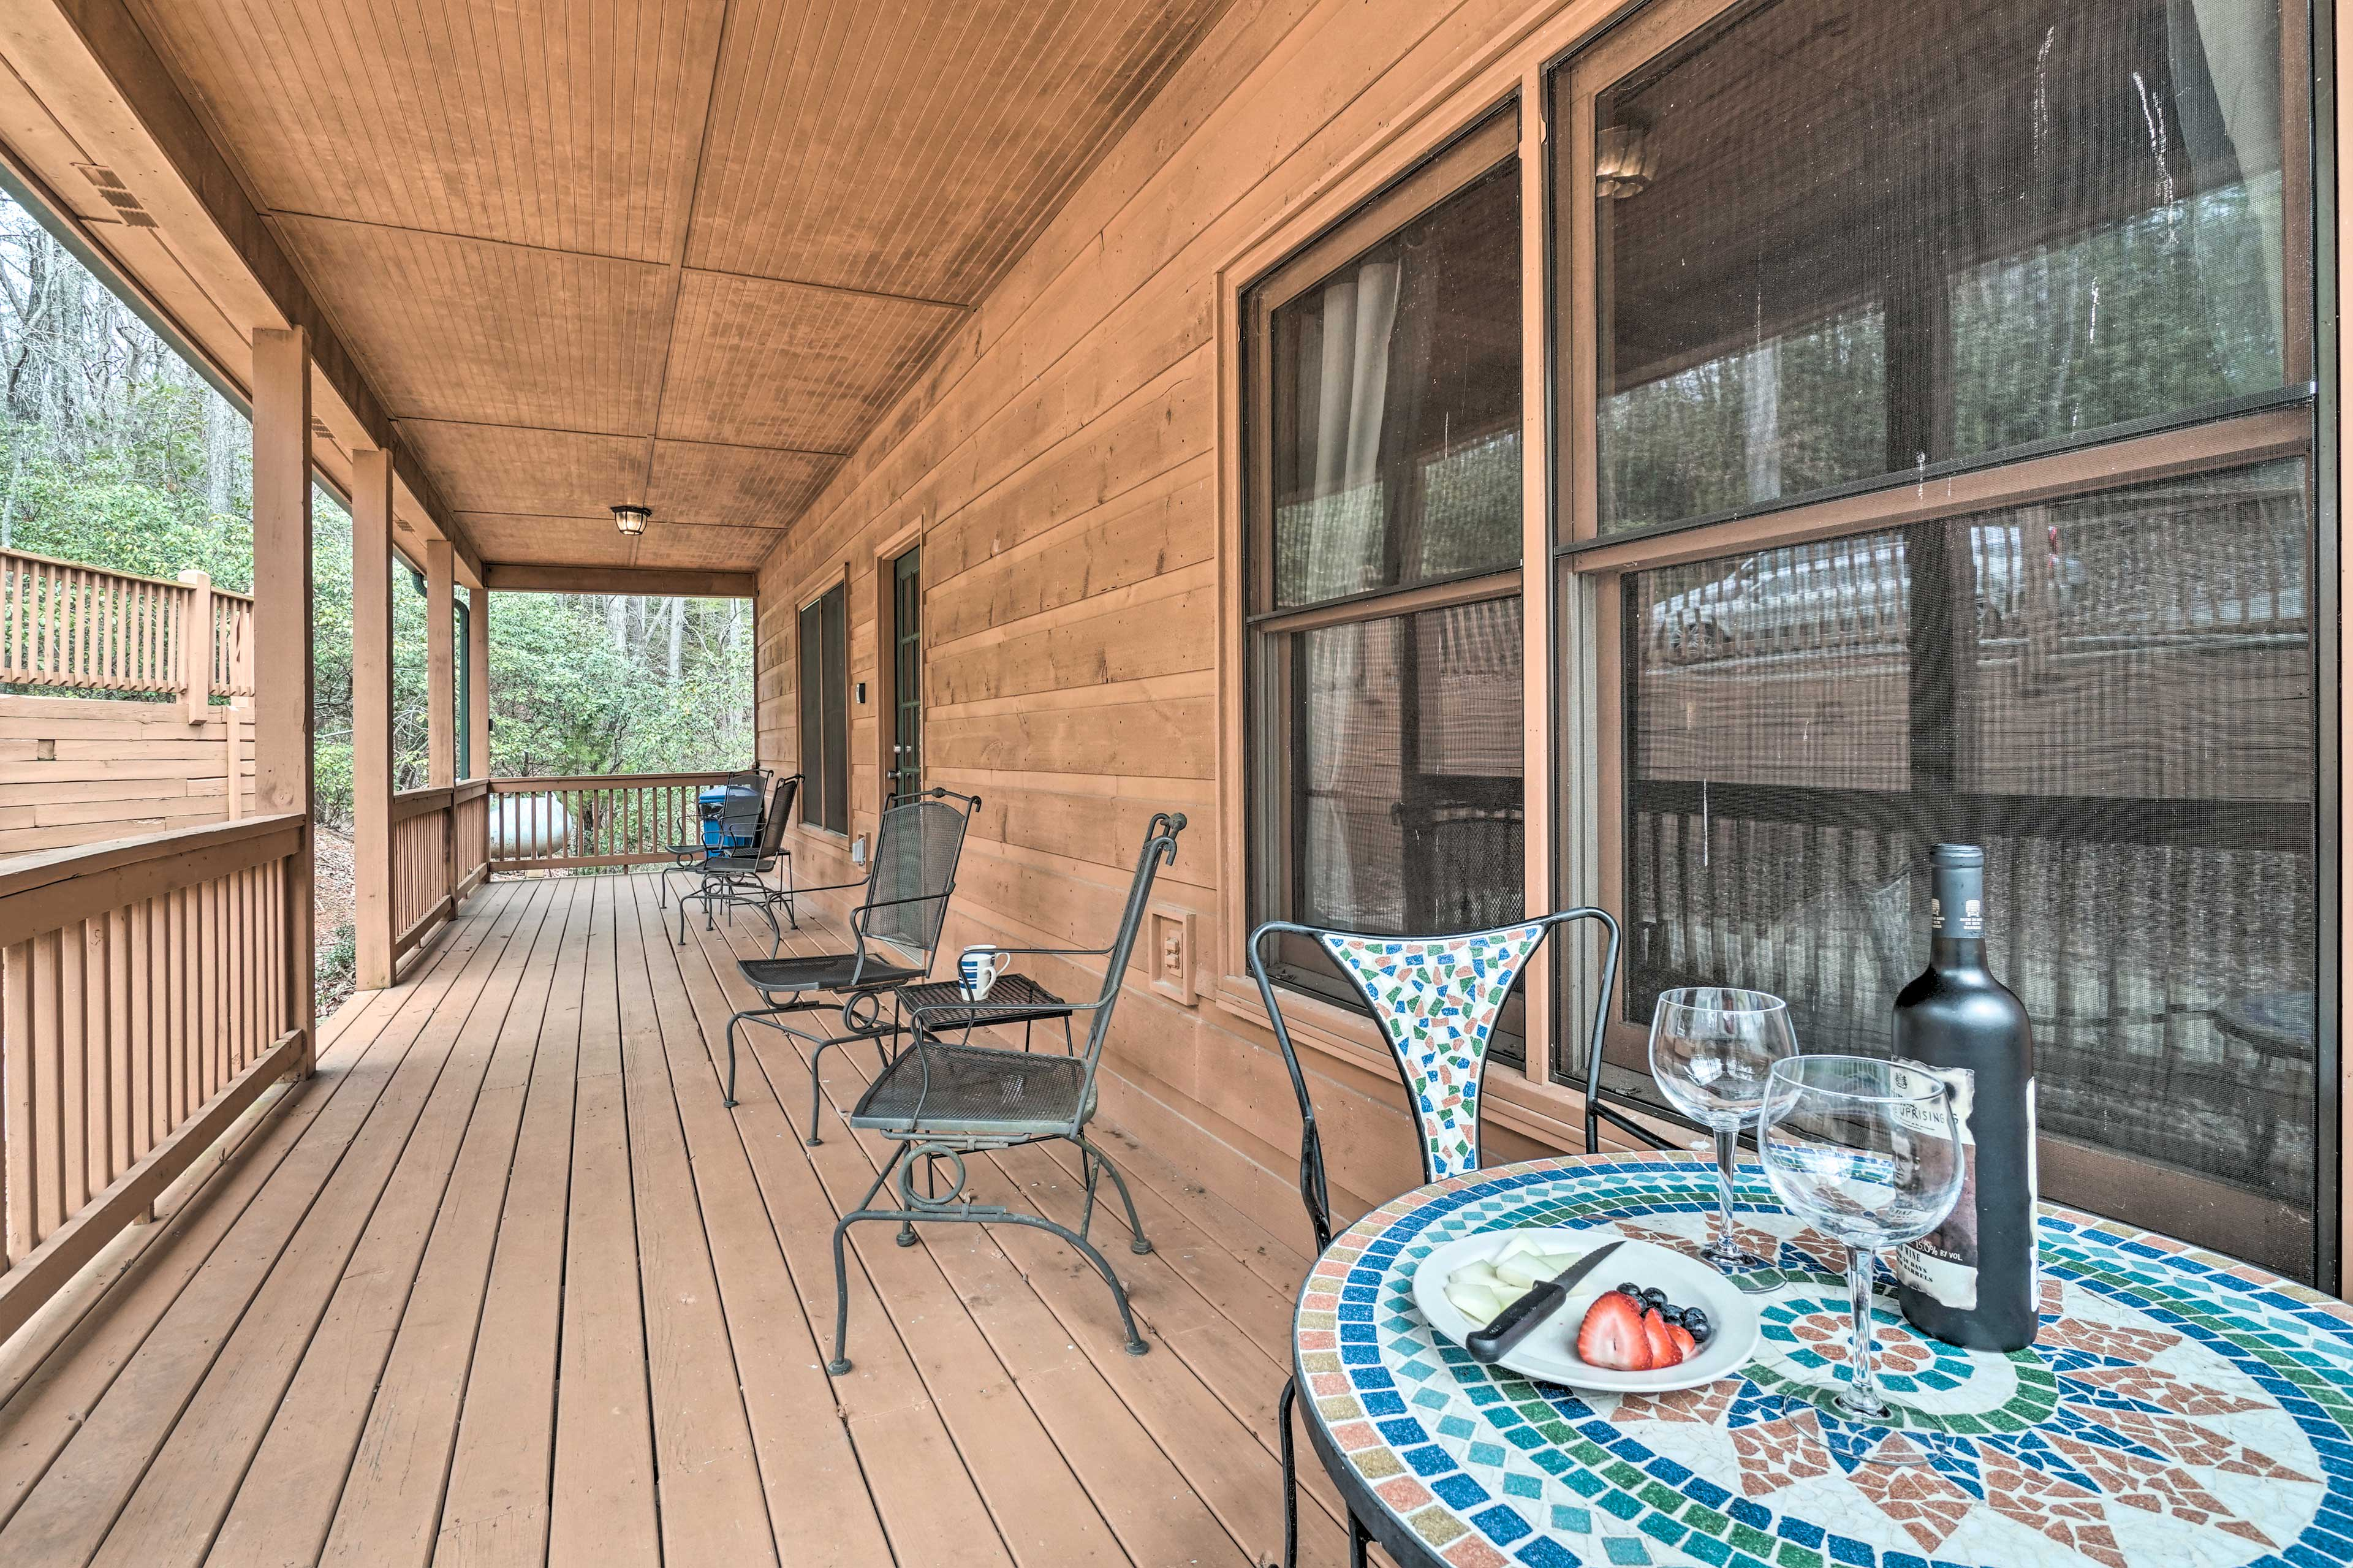 Sip your morning coffee on the front deck.